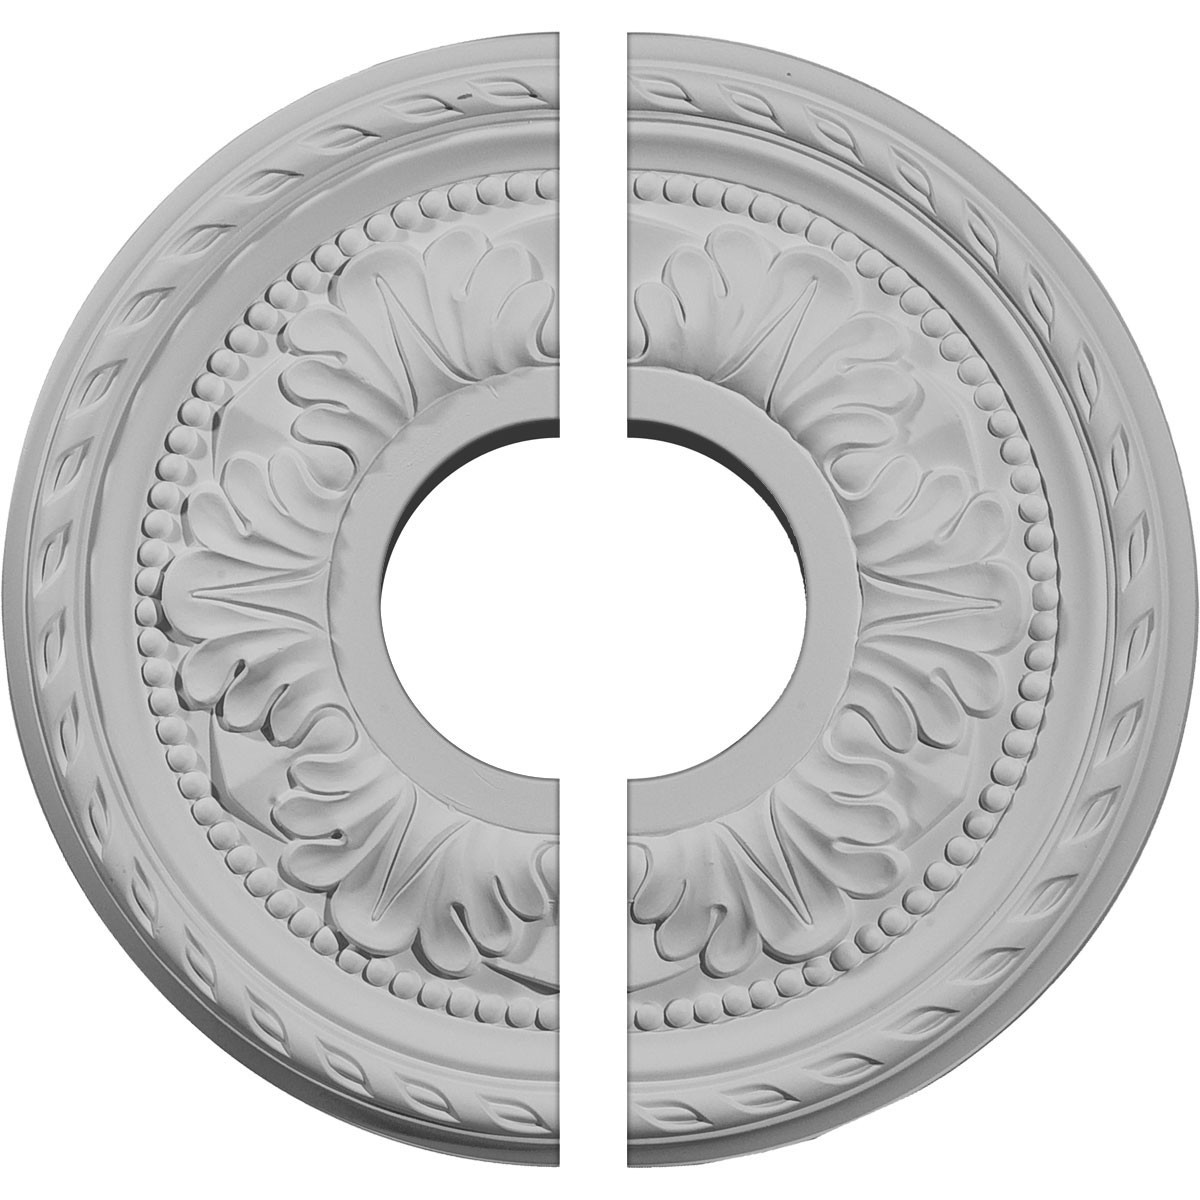 """EM-CM11PM2 - 11 3/8""""OD x 3 5/8""""ID x 7/8""""P Palmetto Ceiling Medallion, Two Piece (Fits Canopies up to 4 1/2"""")"""